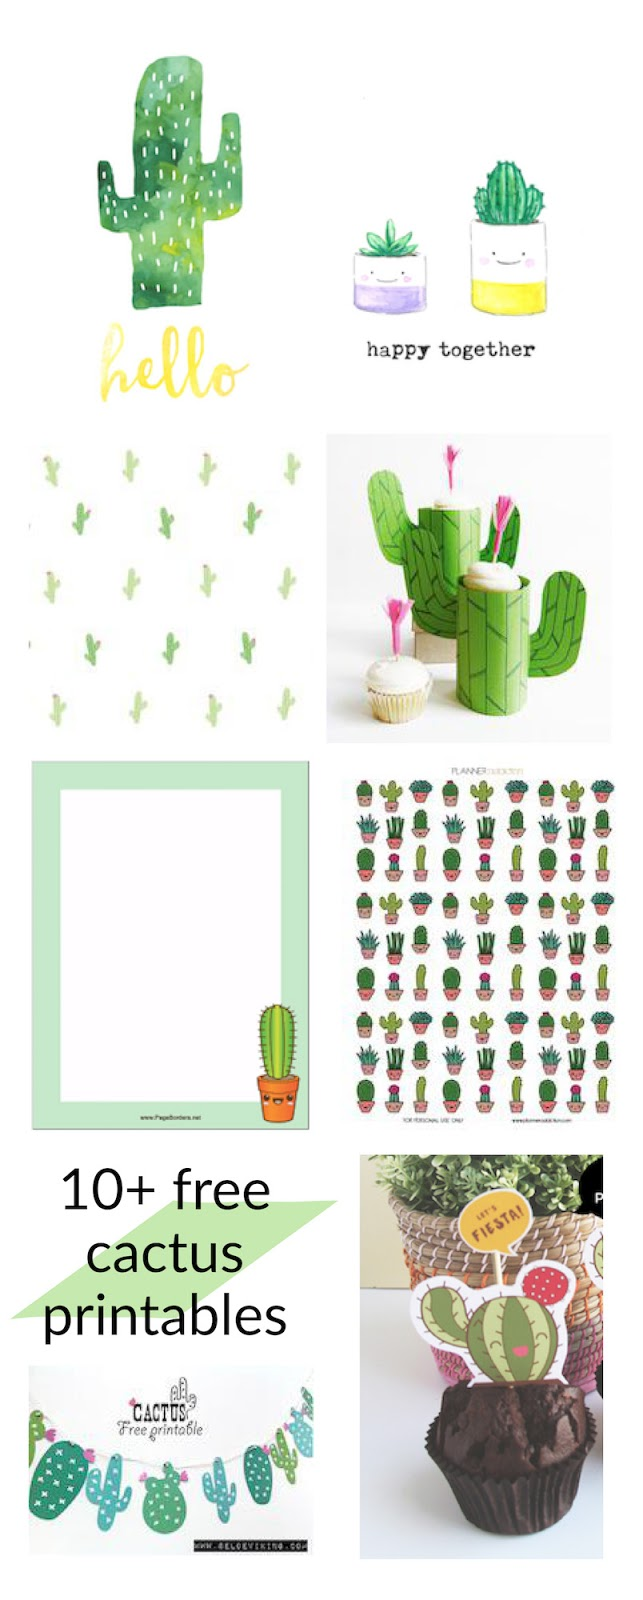 It's just a photo of Rare Free Cactus Printable